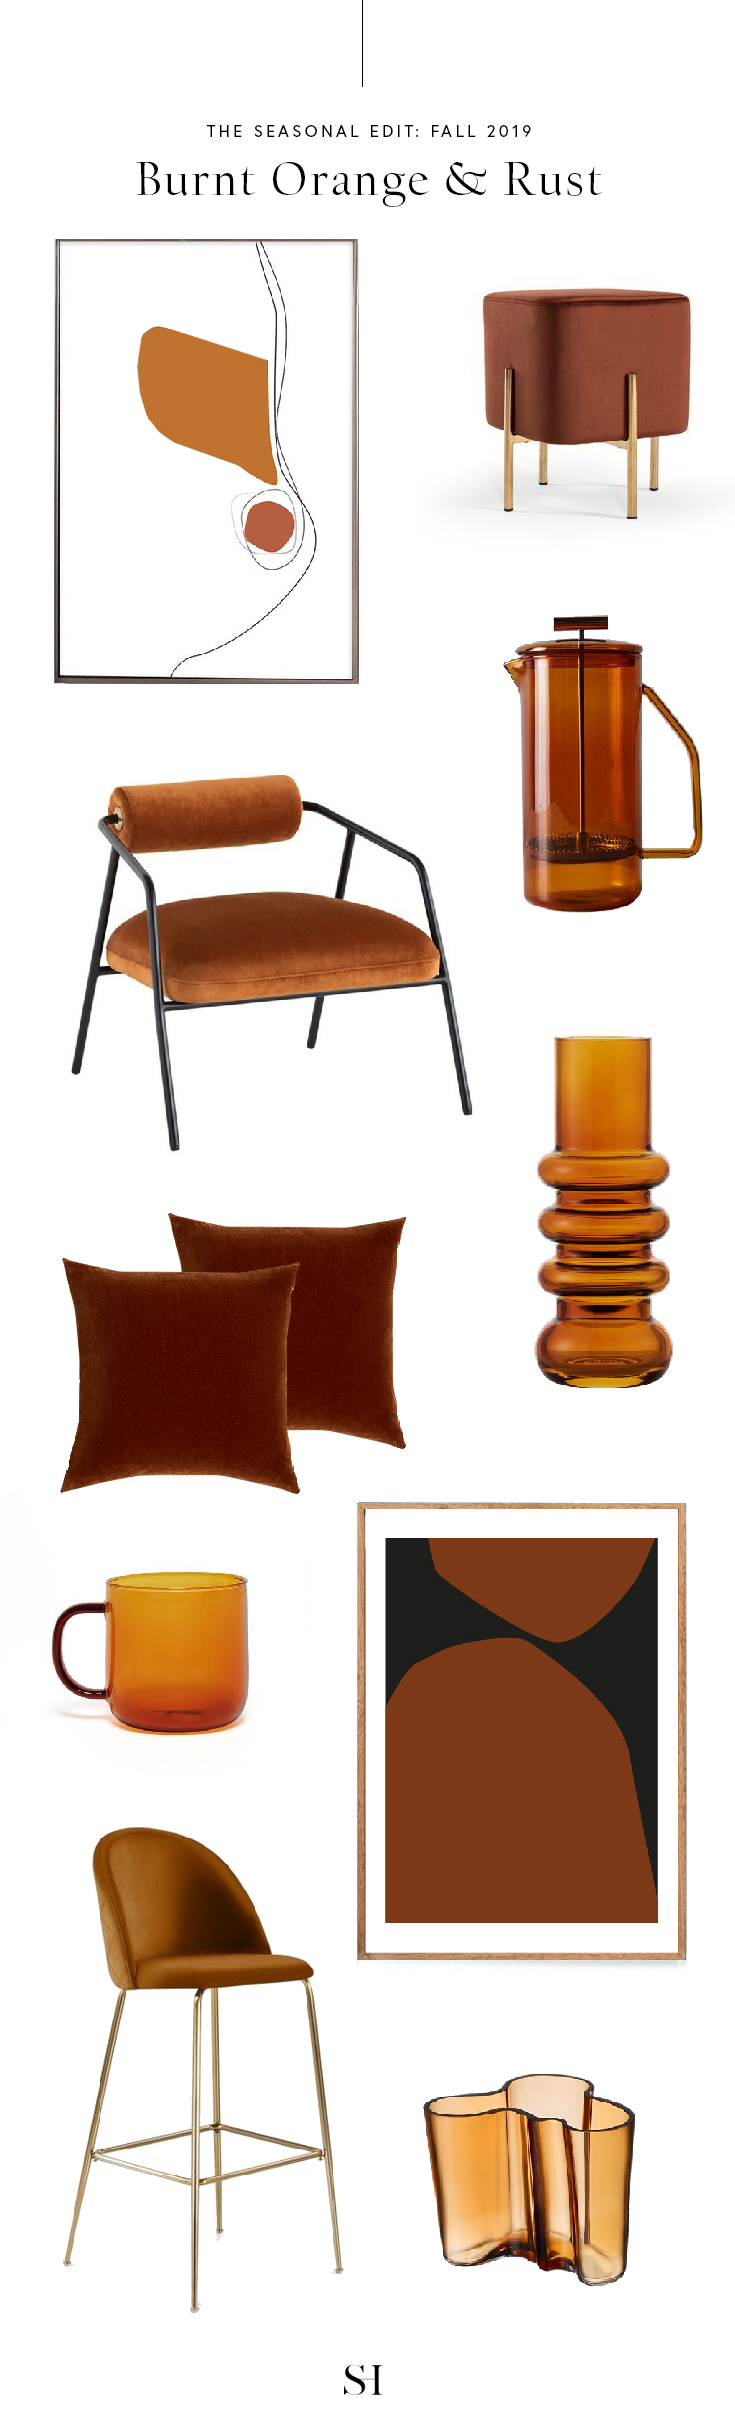 Burnt Orange and rust color palette for fall 2019 interior design and decor trends by the savvy heart.png